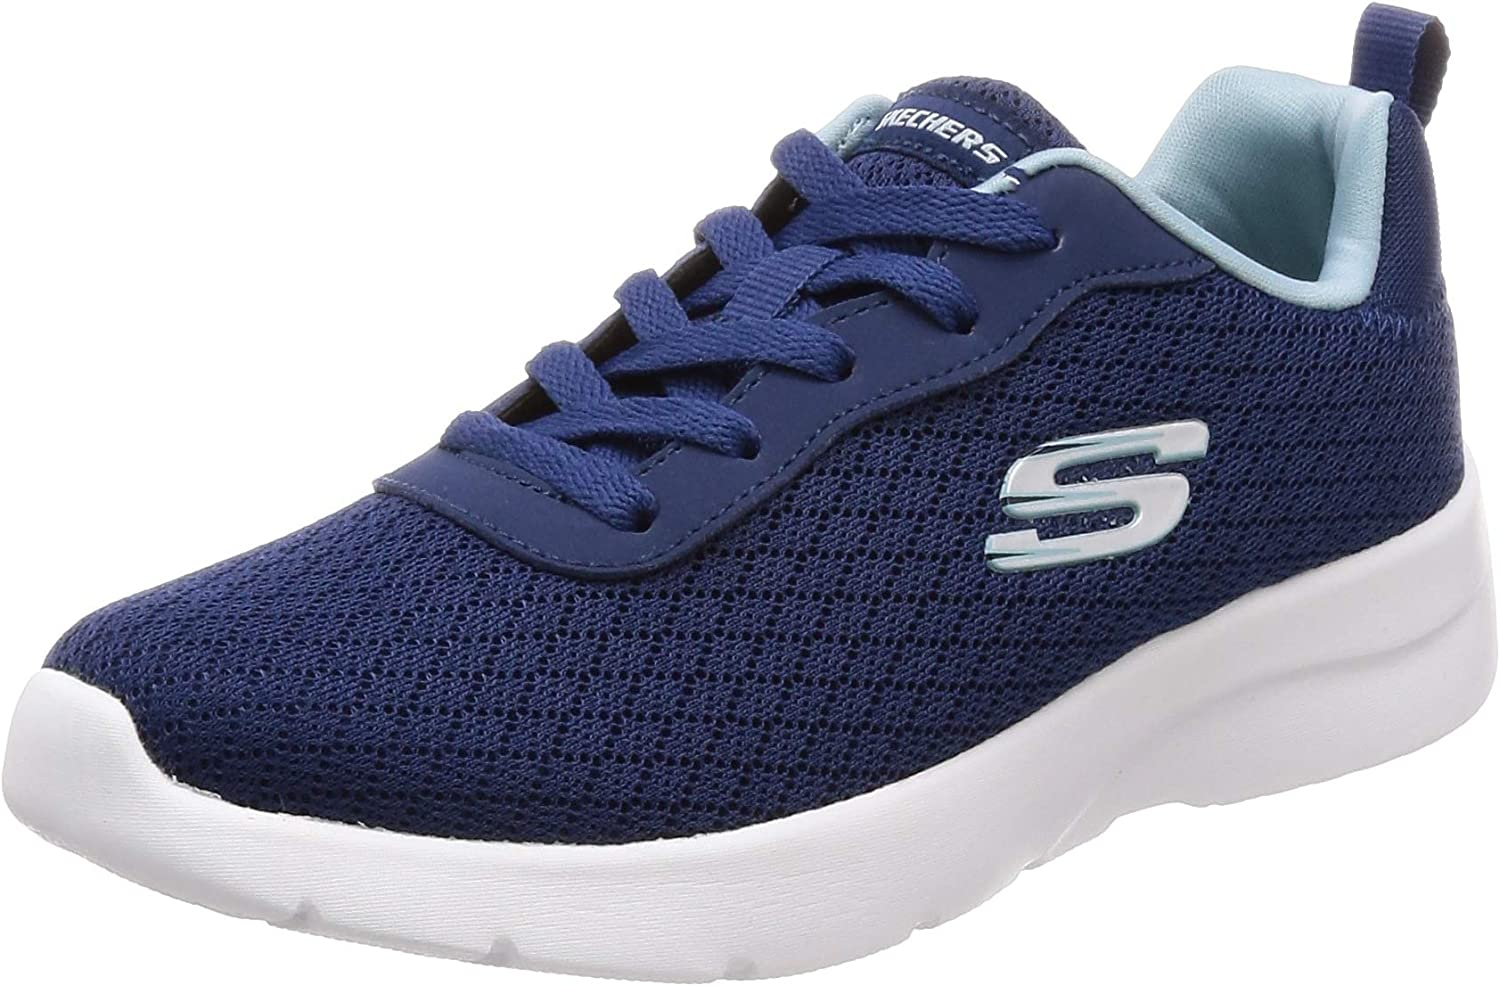 Skechers Dynamight 2.0 Eye to Eye Womens Sneakers shoes